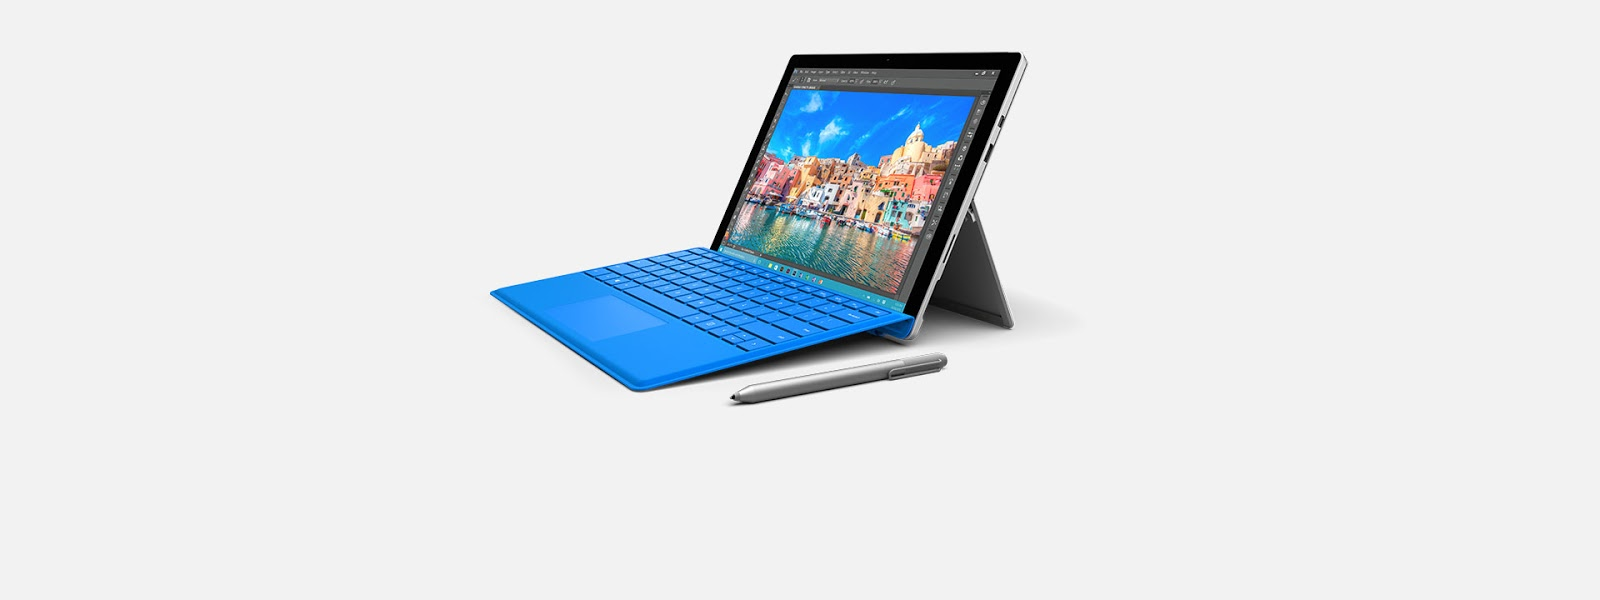 microsoft driver packs httpswwwmicrosoftcomen usdownloaddetailsaspxid38826 surface pro 3